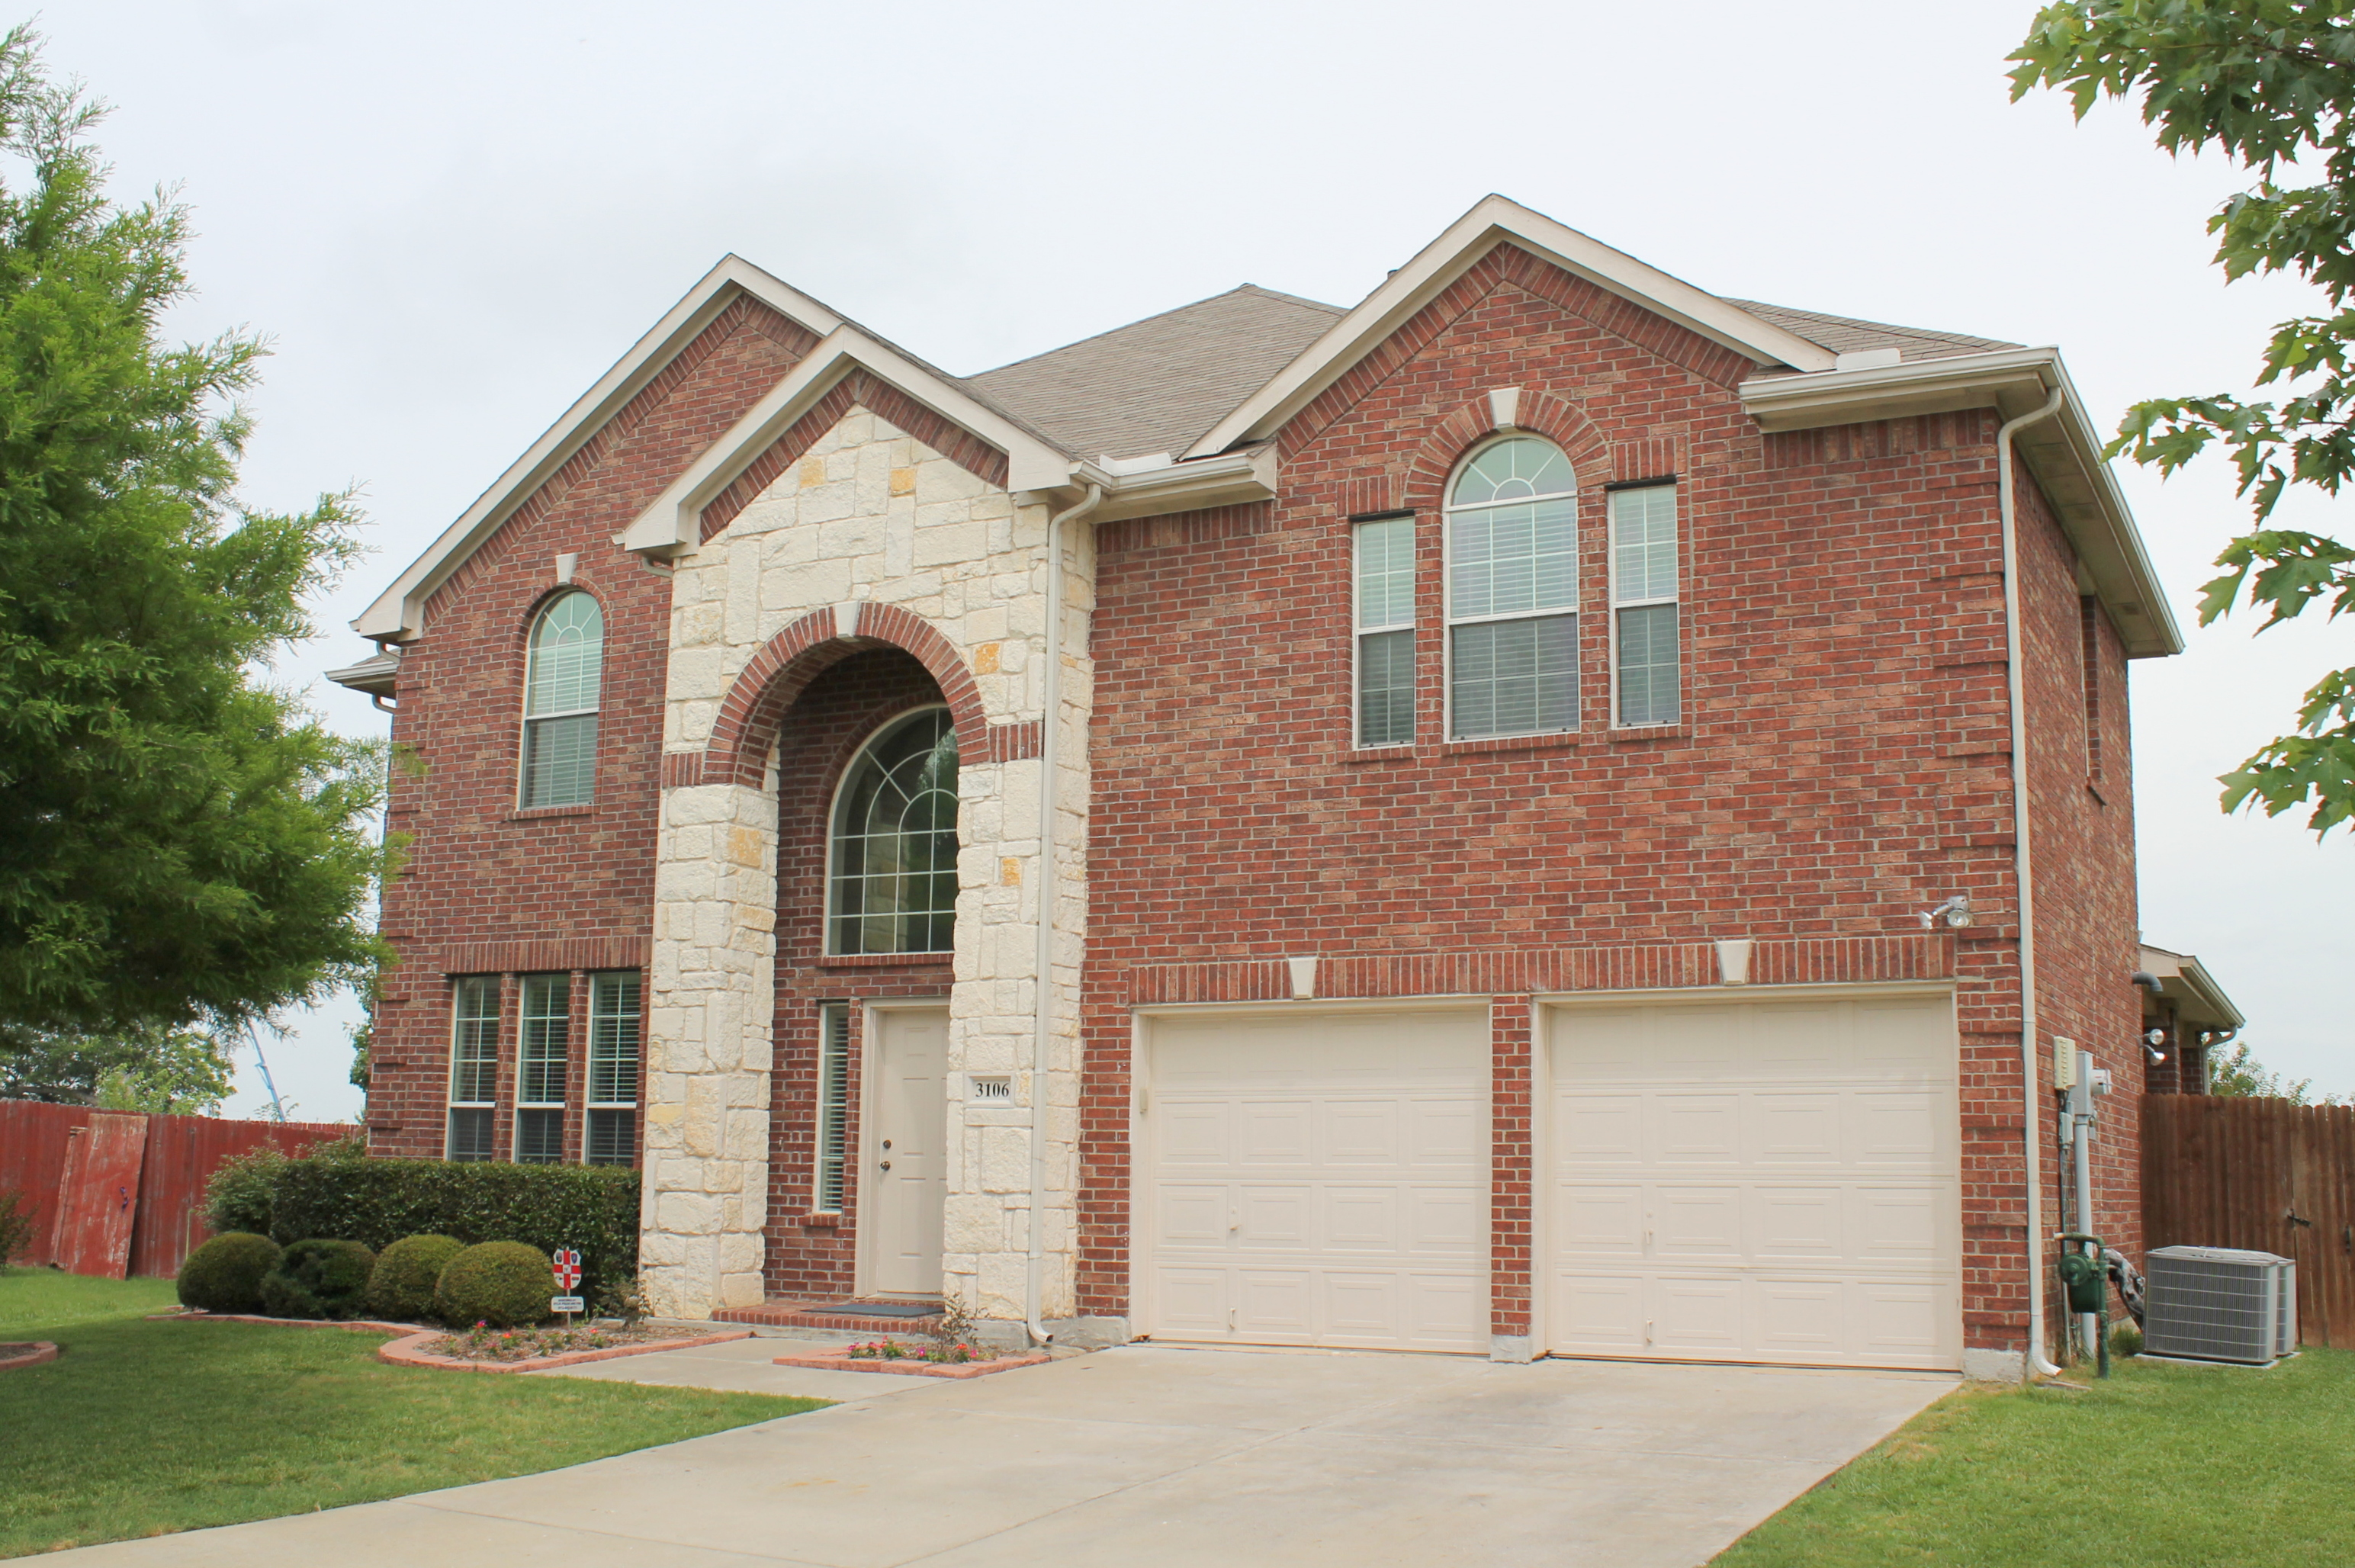 3106 charles court home for sale in wylie texas